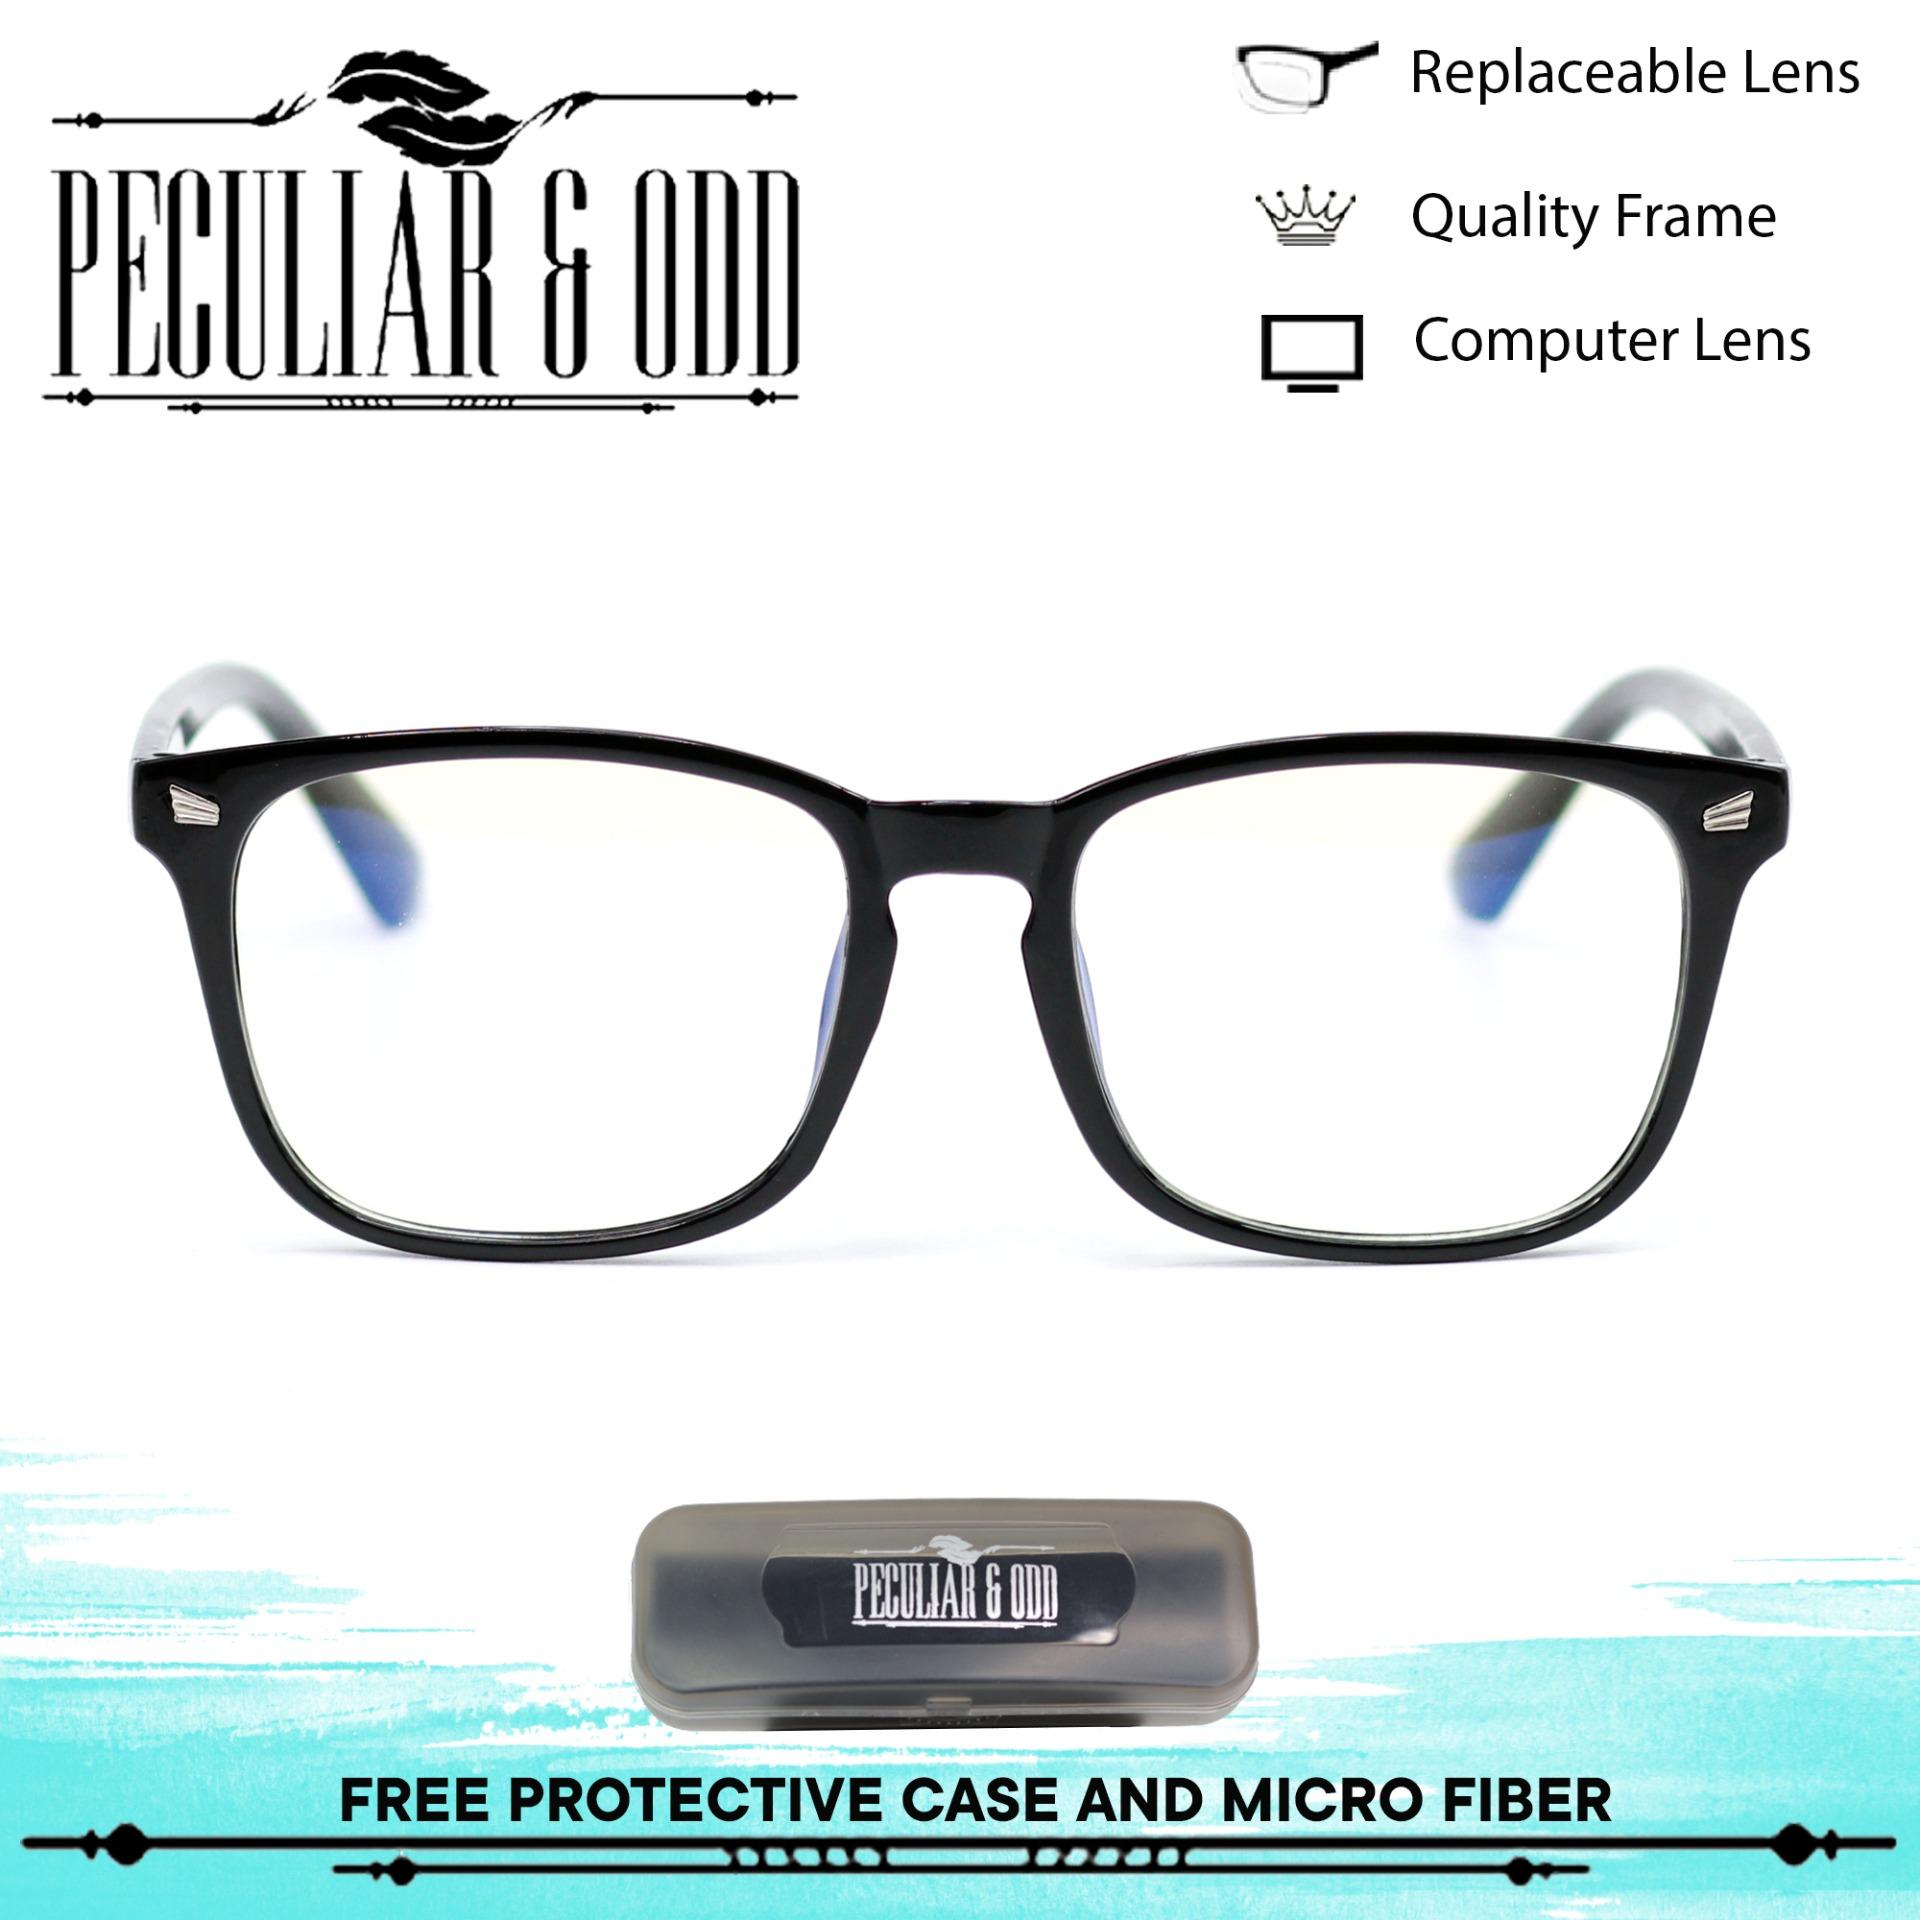 cbcffdf79c Peculiar Optical Square 15969 SanBlack Anti Radiation Blue Lens Computer  Eyeglass Replaceable Lenses Unisex Eyewear